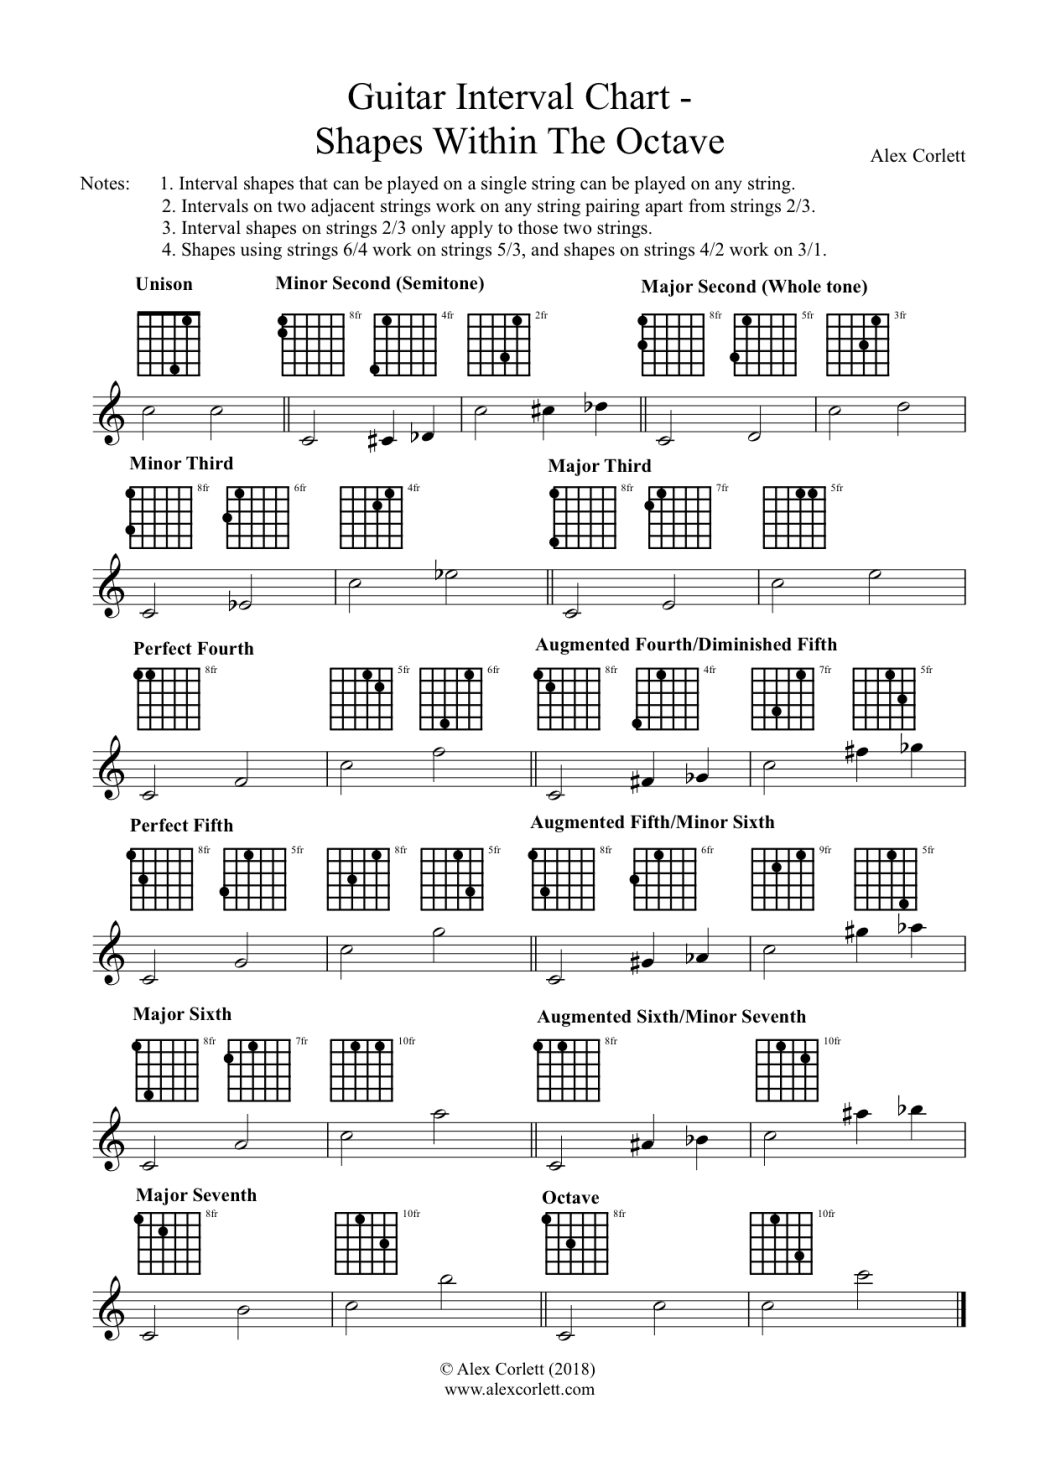 Guitar Interval Chart - Shapes Within The Octave